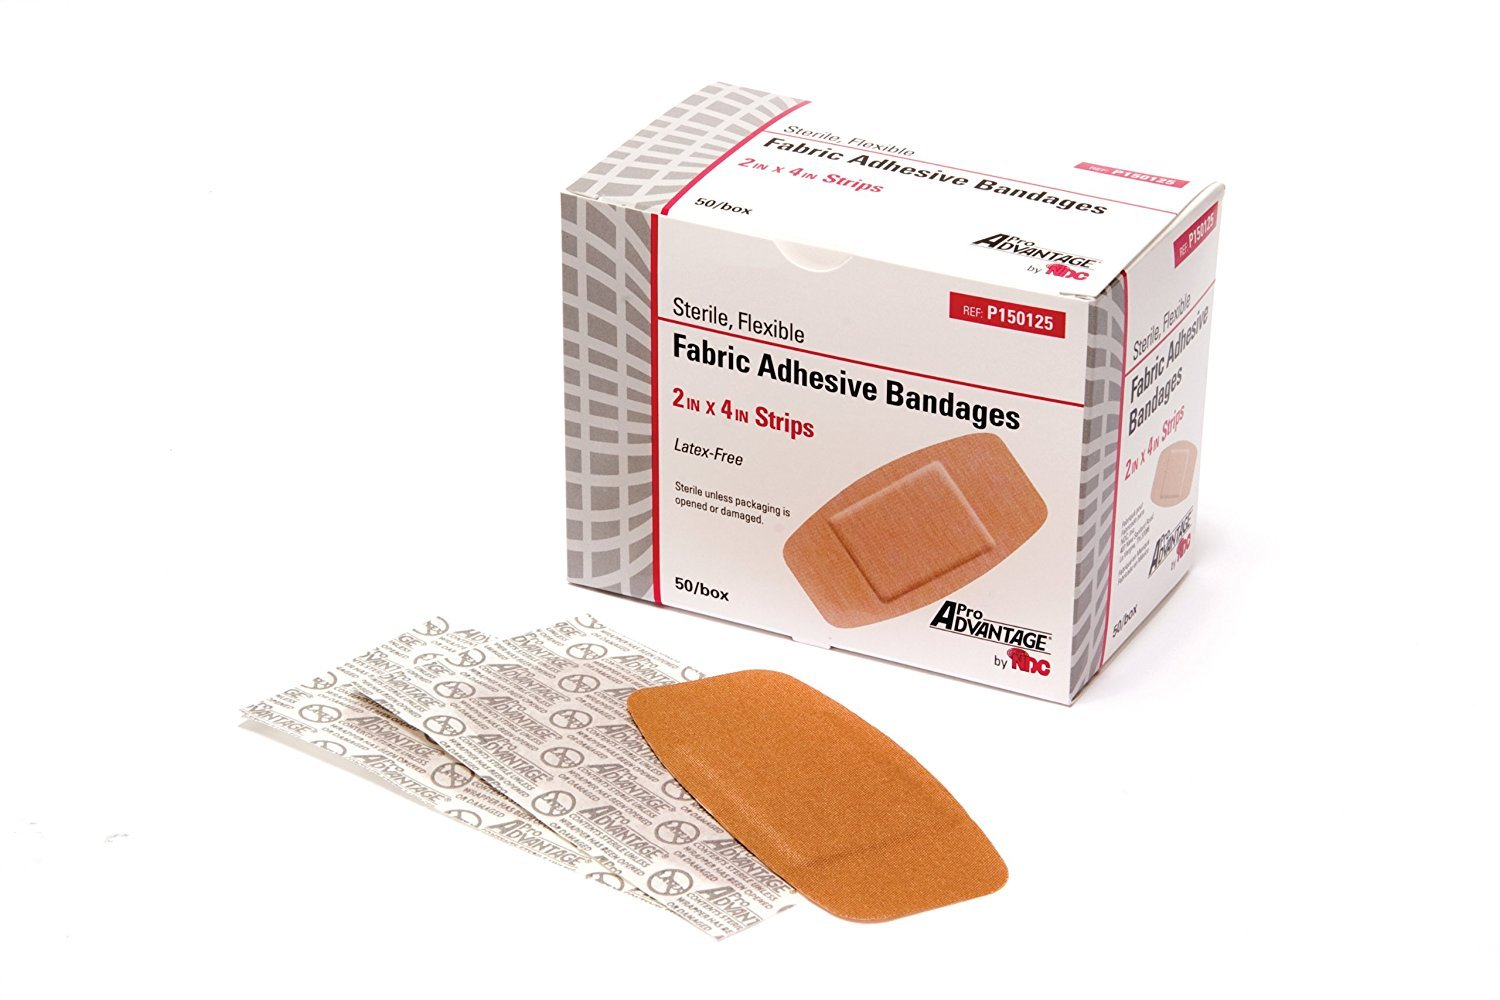 ProAdvantage P150125 Flexible Large Adhesive Bandages 2'' x 4'' (Pack of 50)